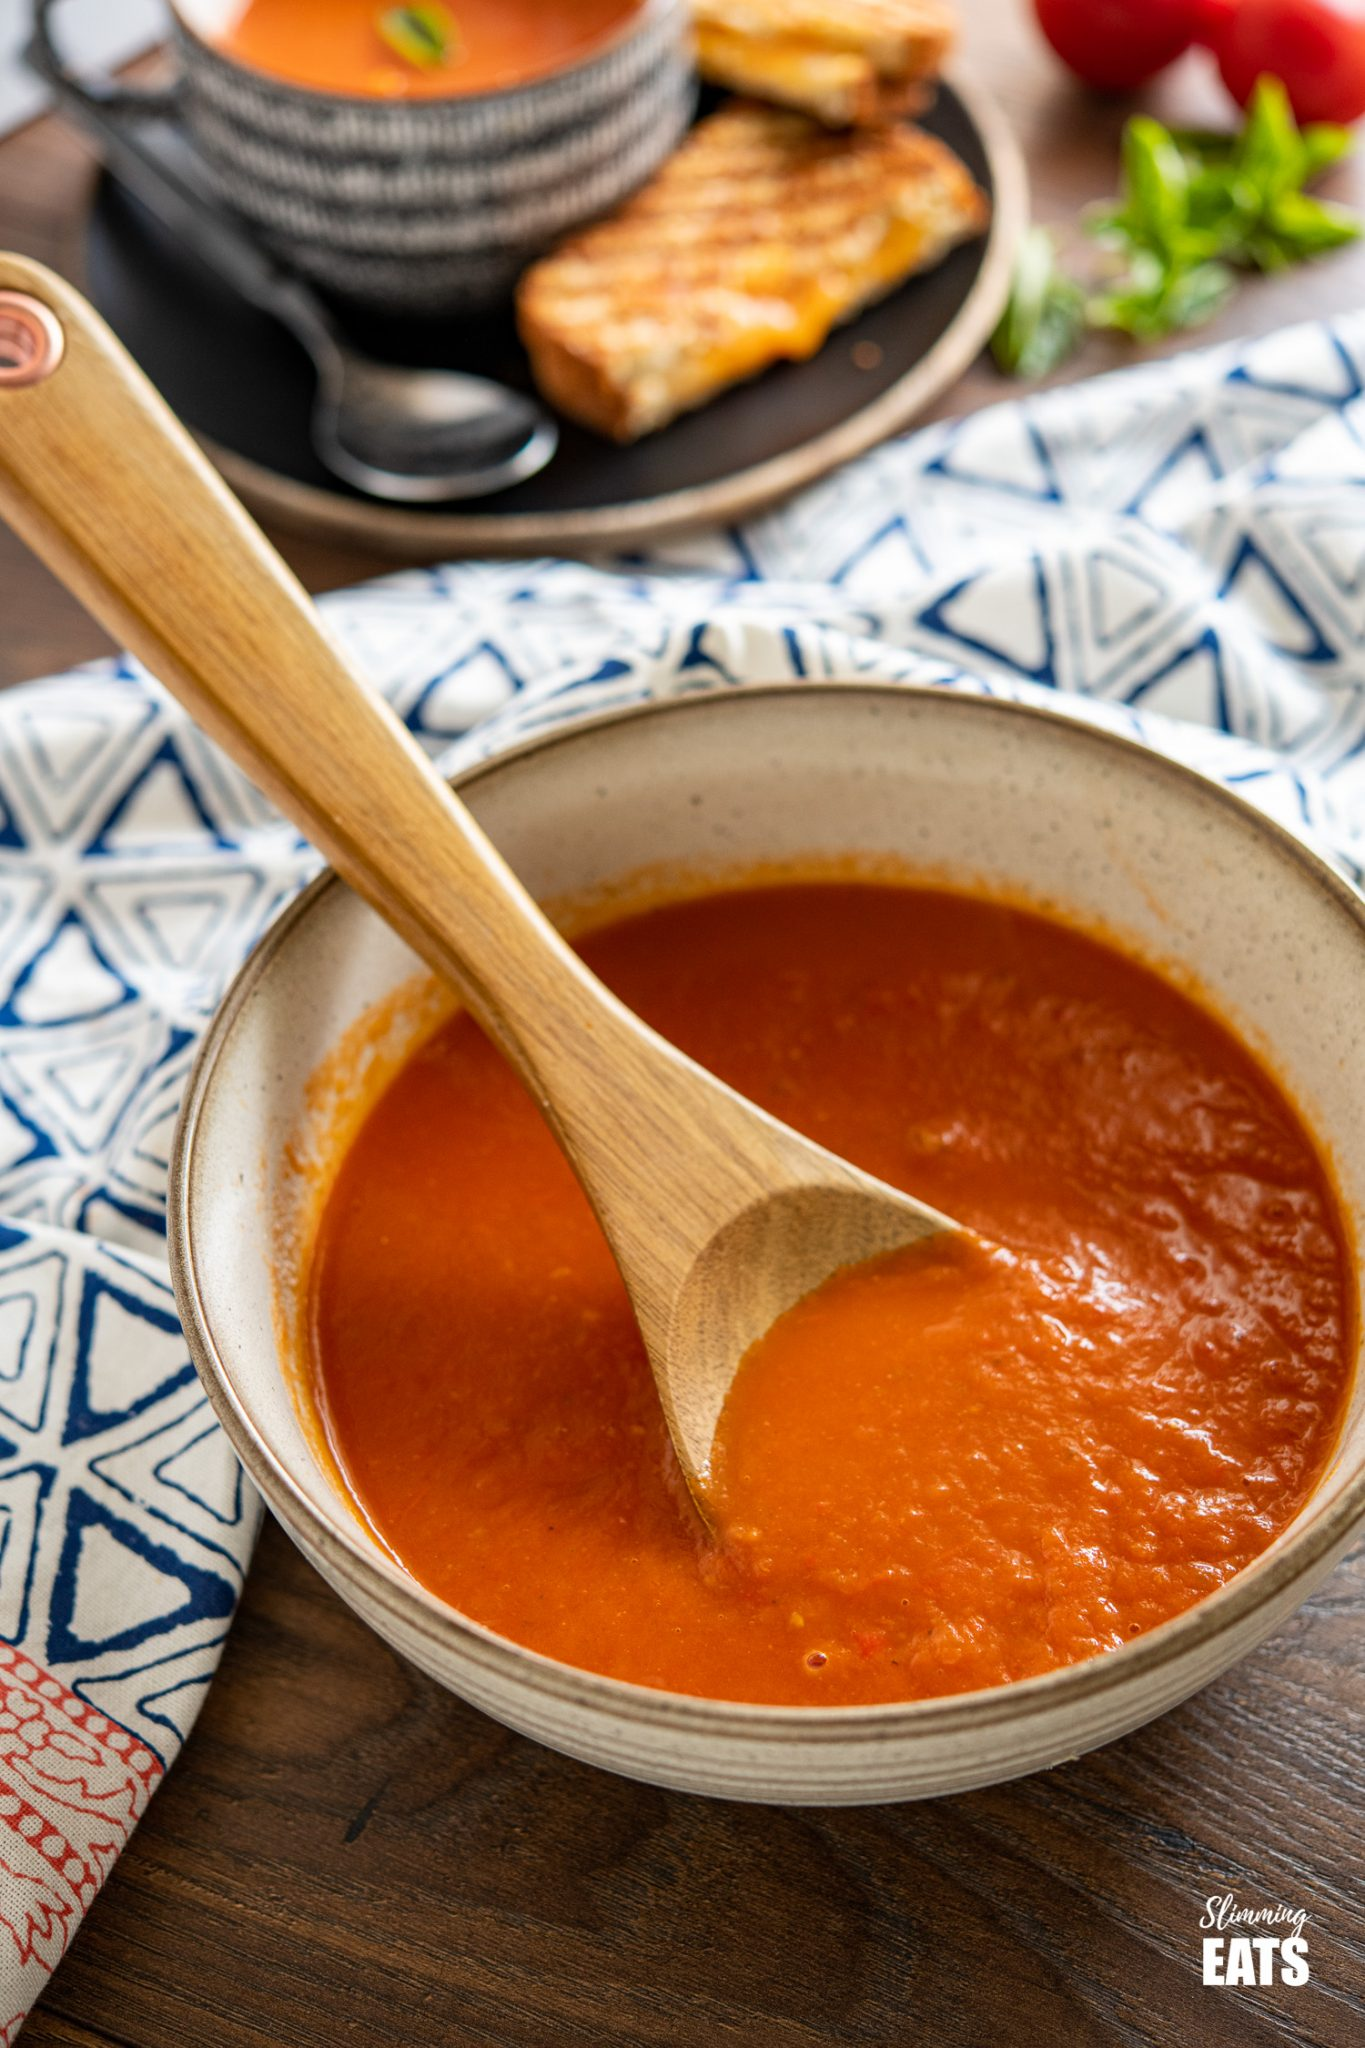 large speckled brown bowl of roasted pepper and tomato soup with wooden spoon